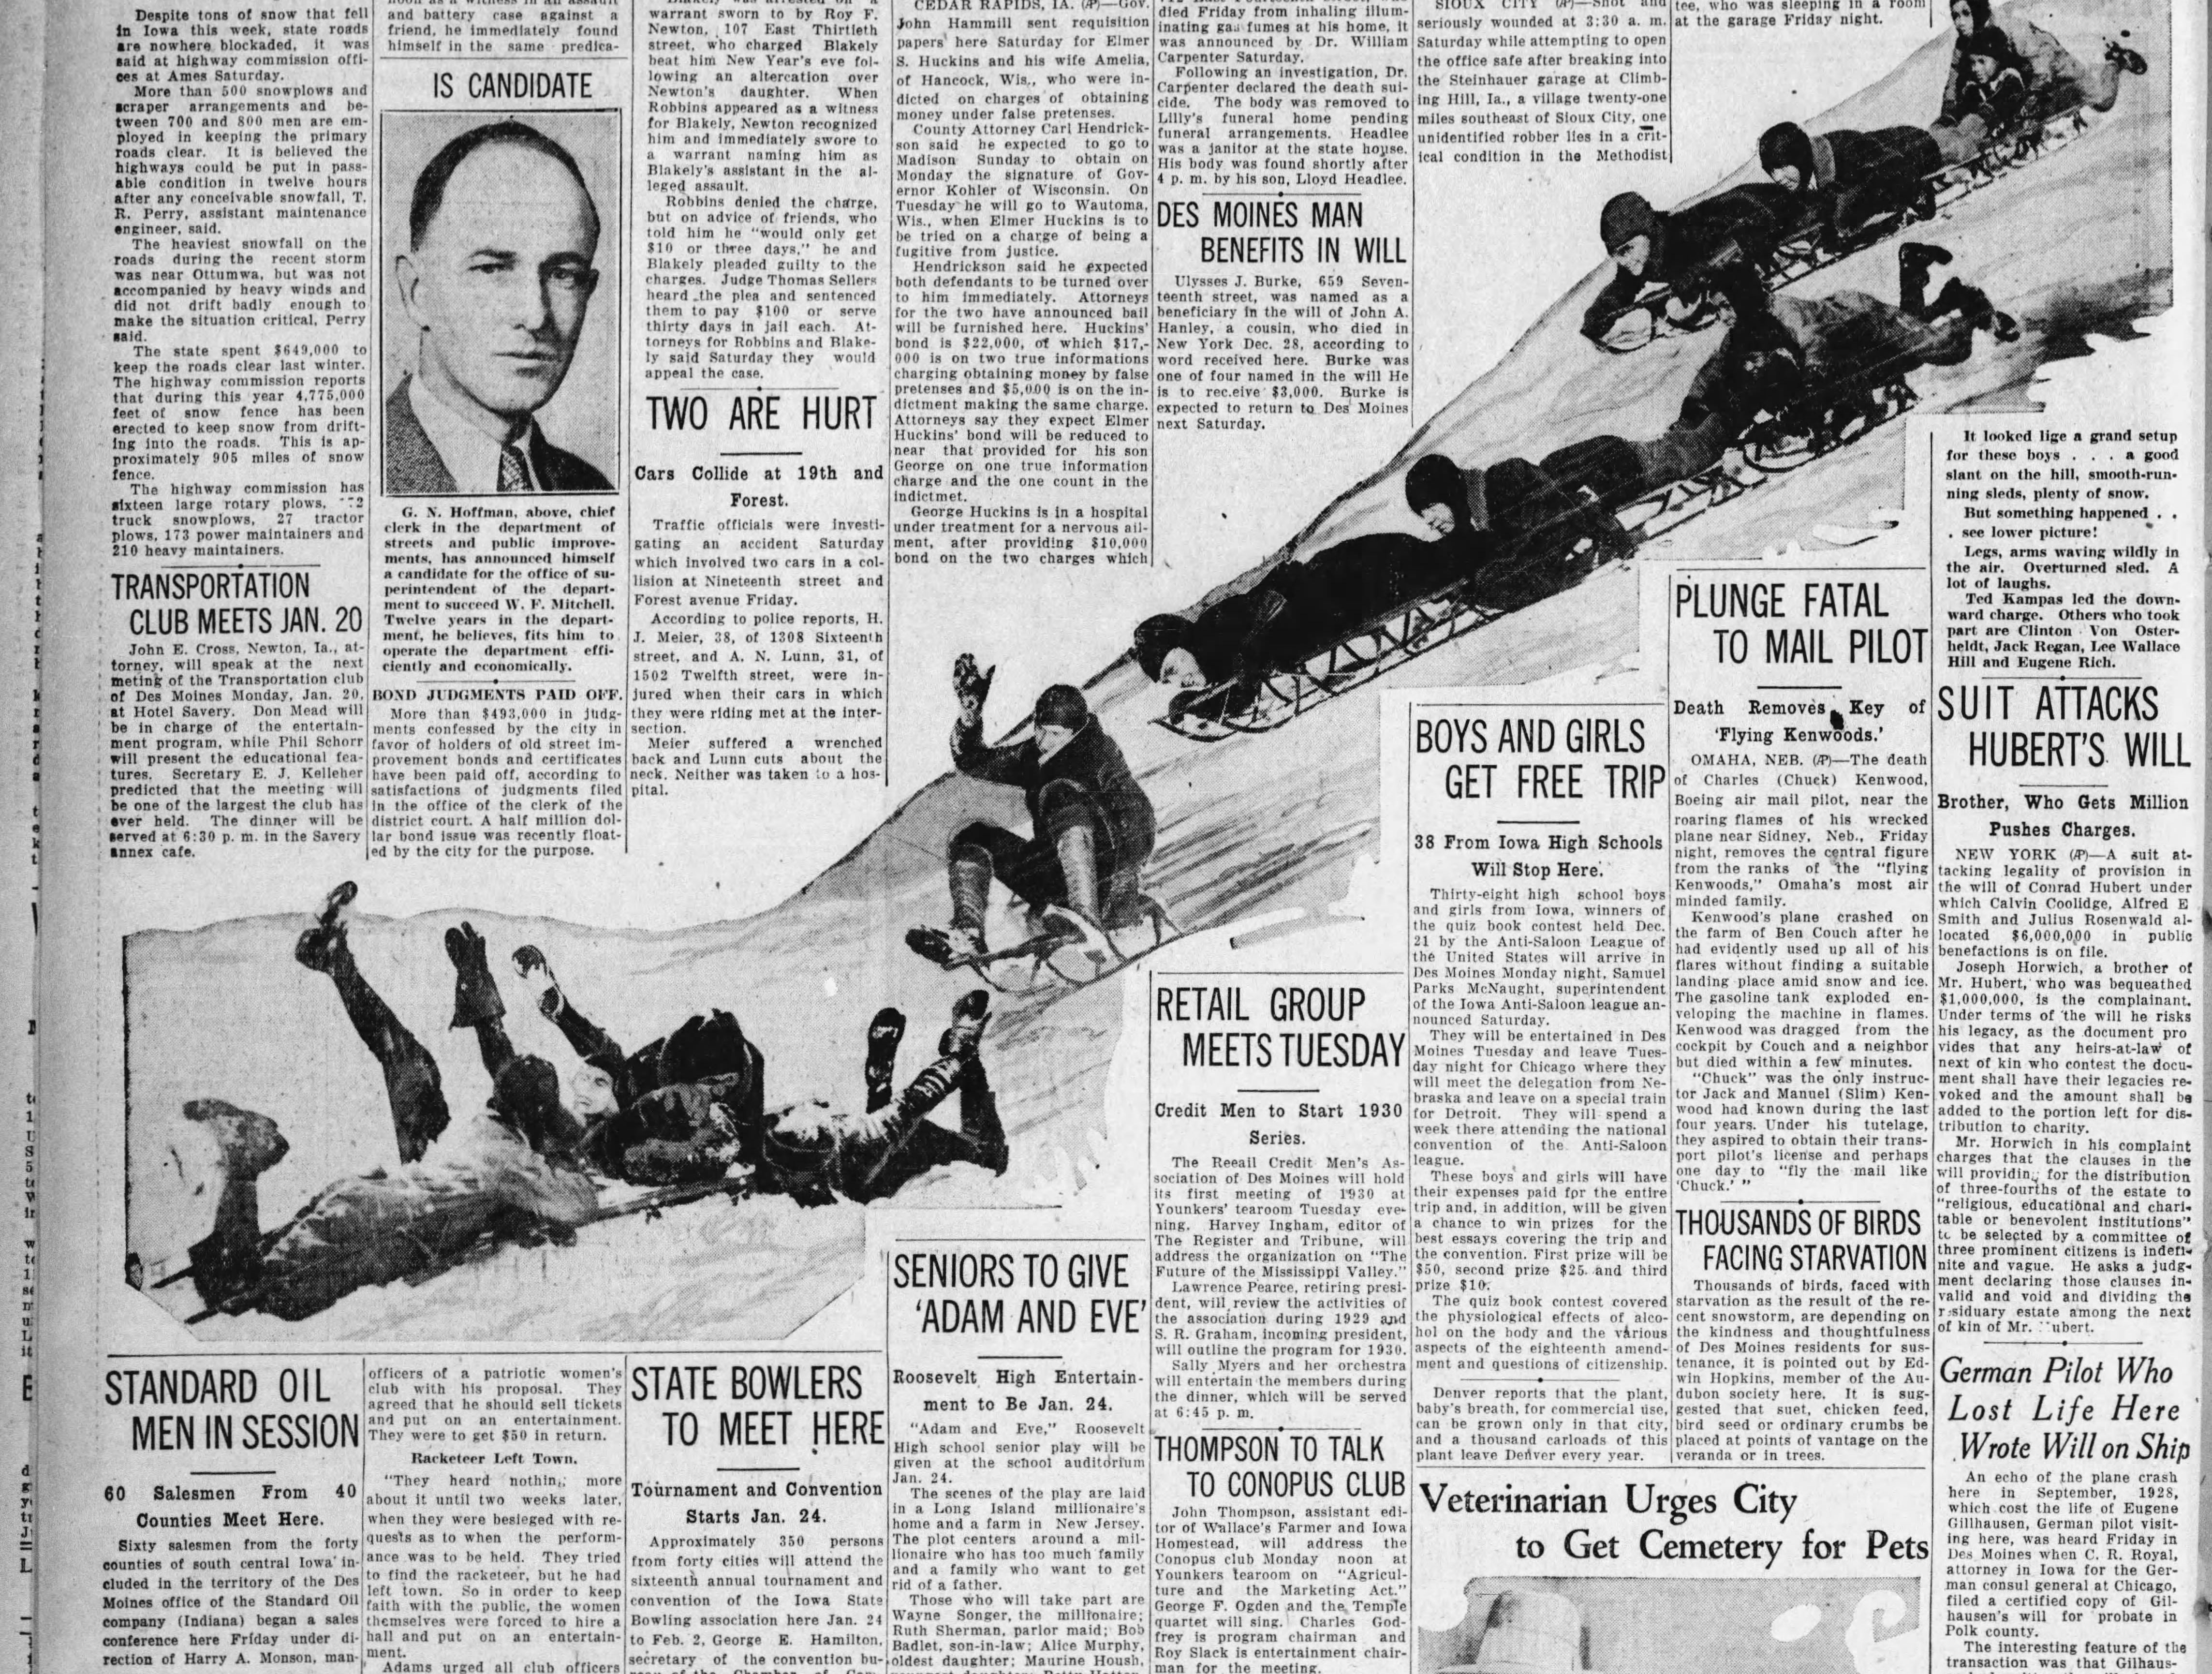 """The Jan. 11, 1930 Des Moines Tribune showed Des Moines boys having fun after a snow storm. """"Legs, arms waving wildly in the air. Overturned sled. A lot of laughs. Ted Kampas led the downward charge. Others who took part are Clinton Von Osterheldt, Jack Regan, Lee Wallace Hill and Eugene Rich."""""""